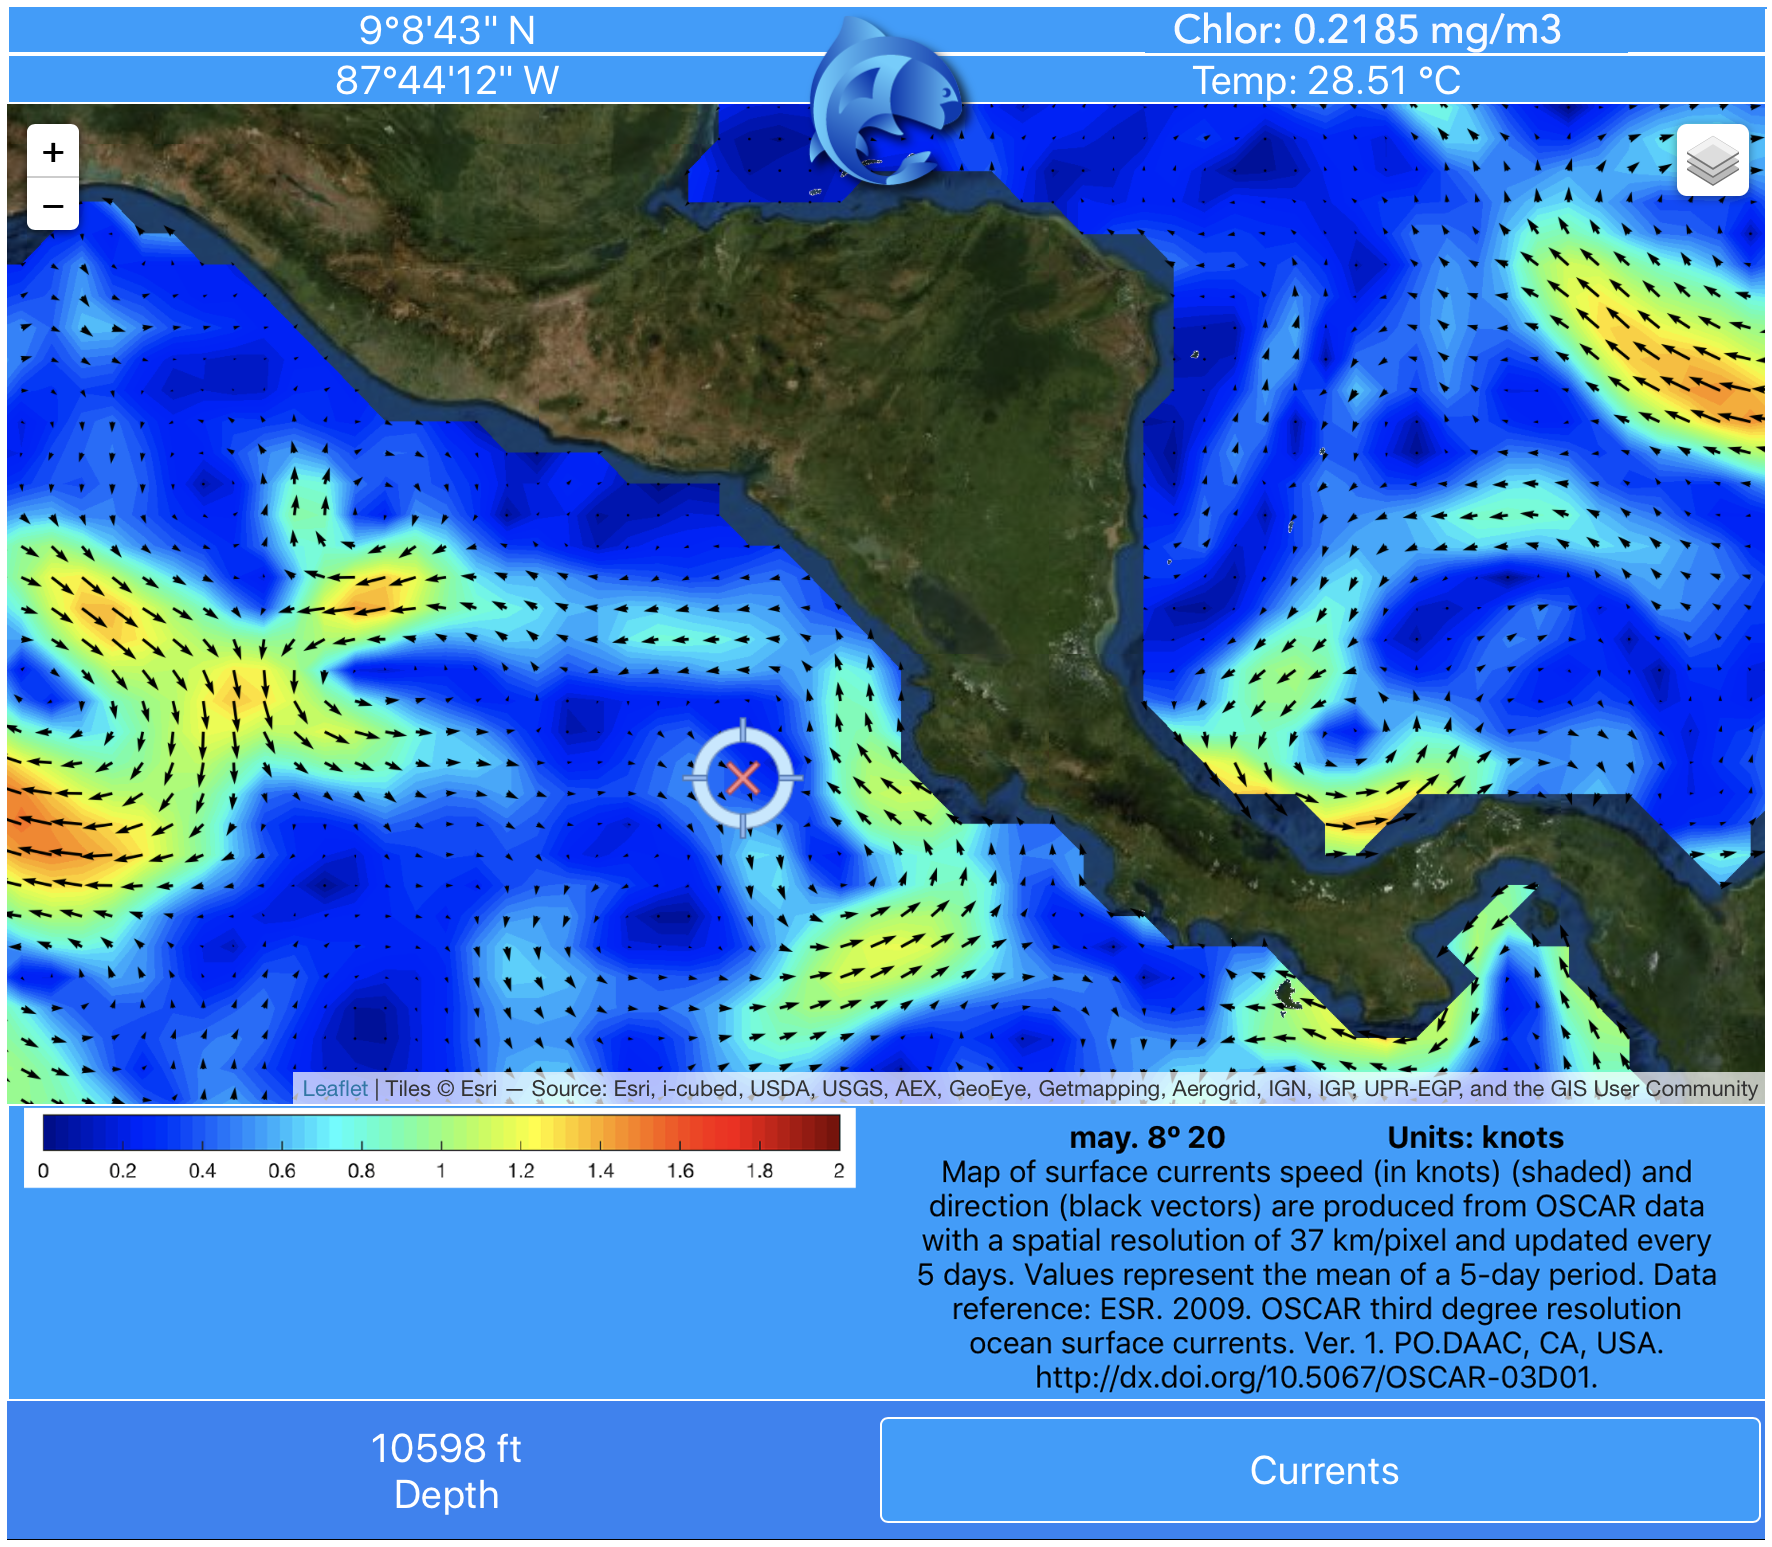 Information on currents around Central America from pezCA